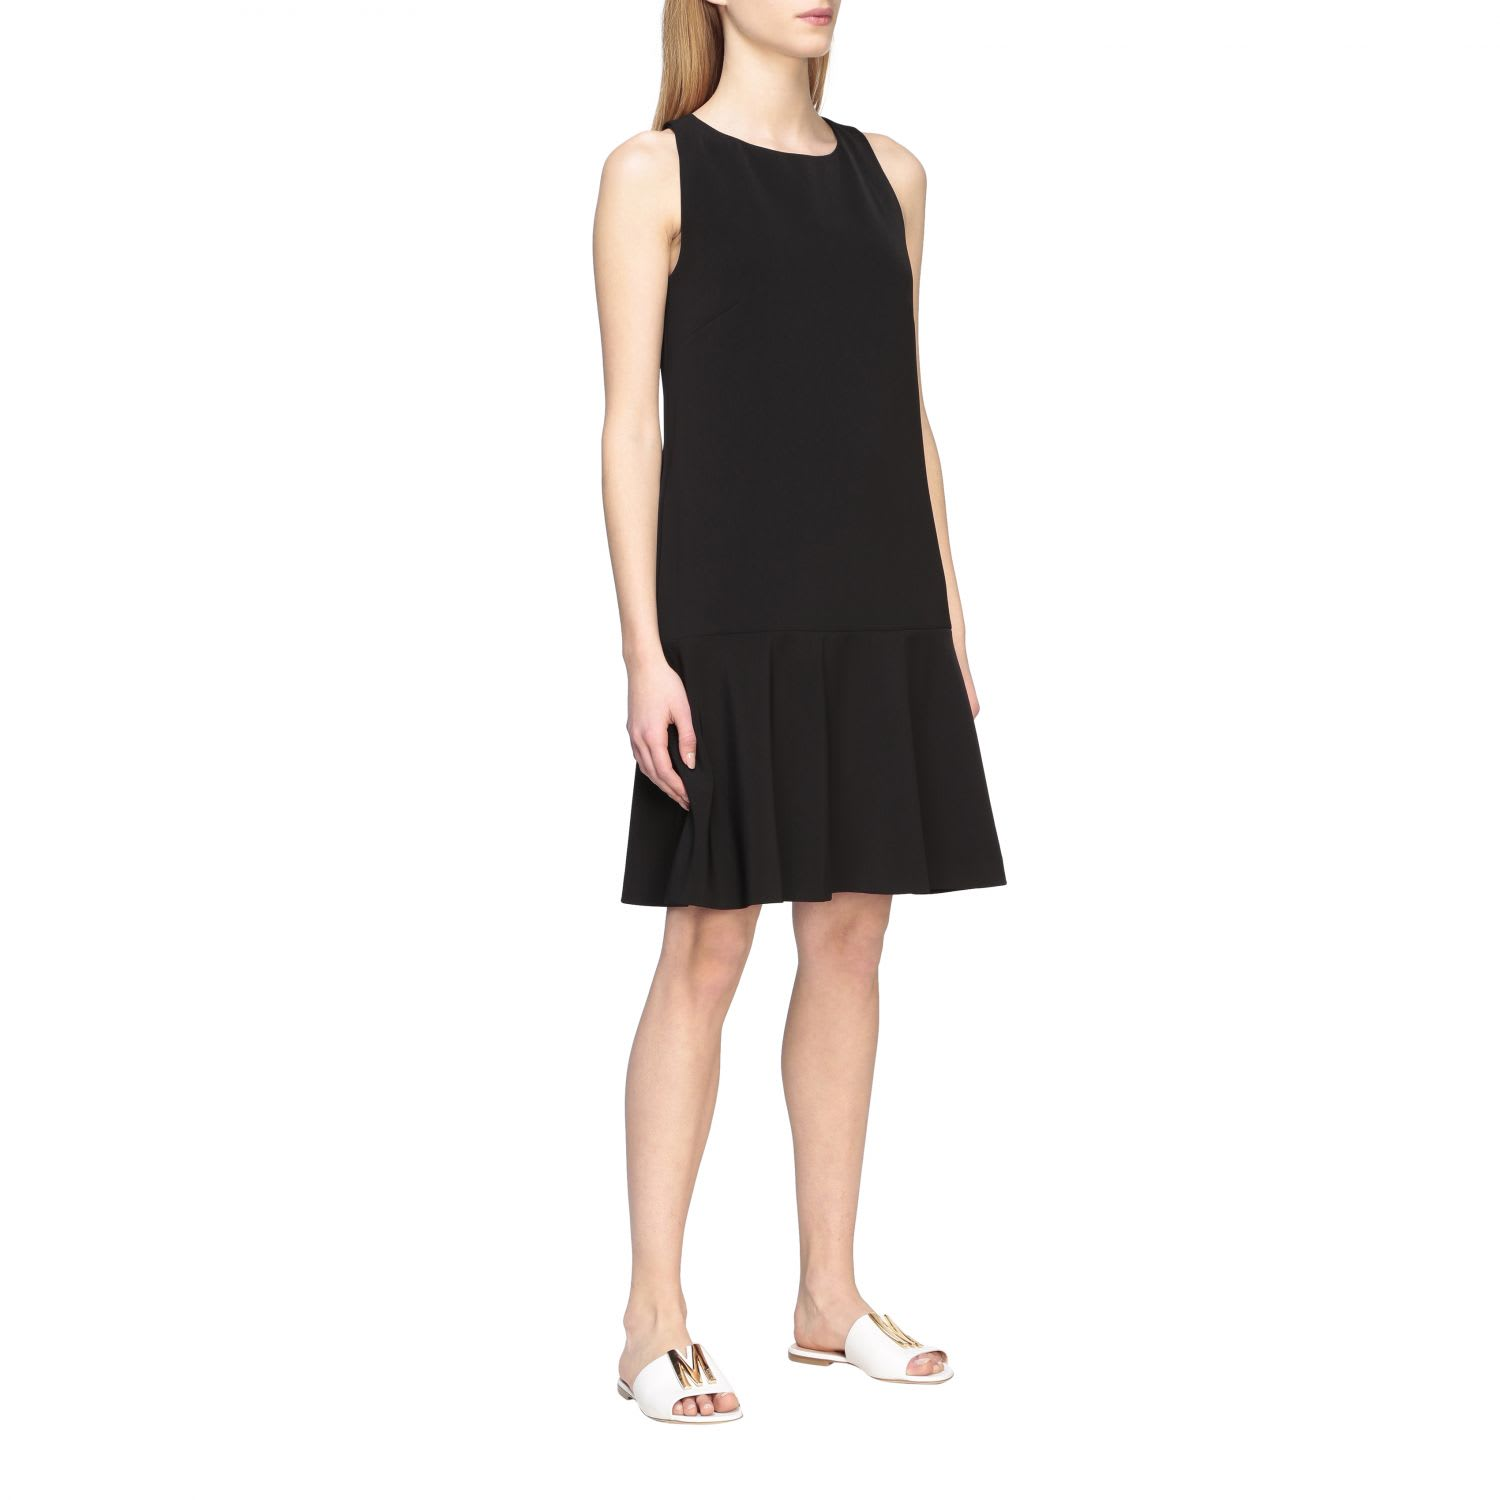 Boutique Moschino Dress Boutique Moschino Dress With Back Bow